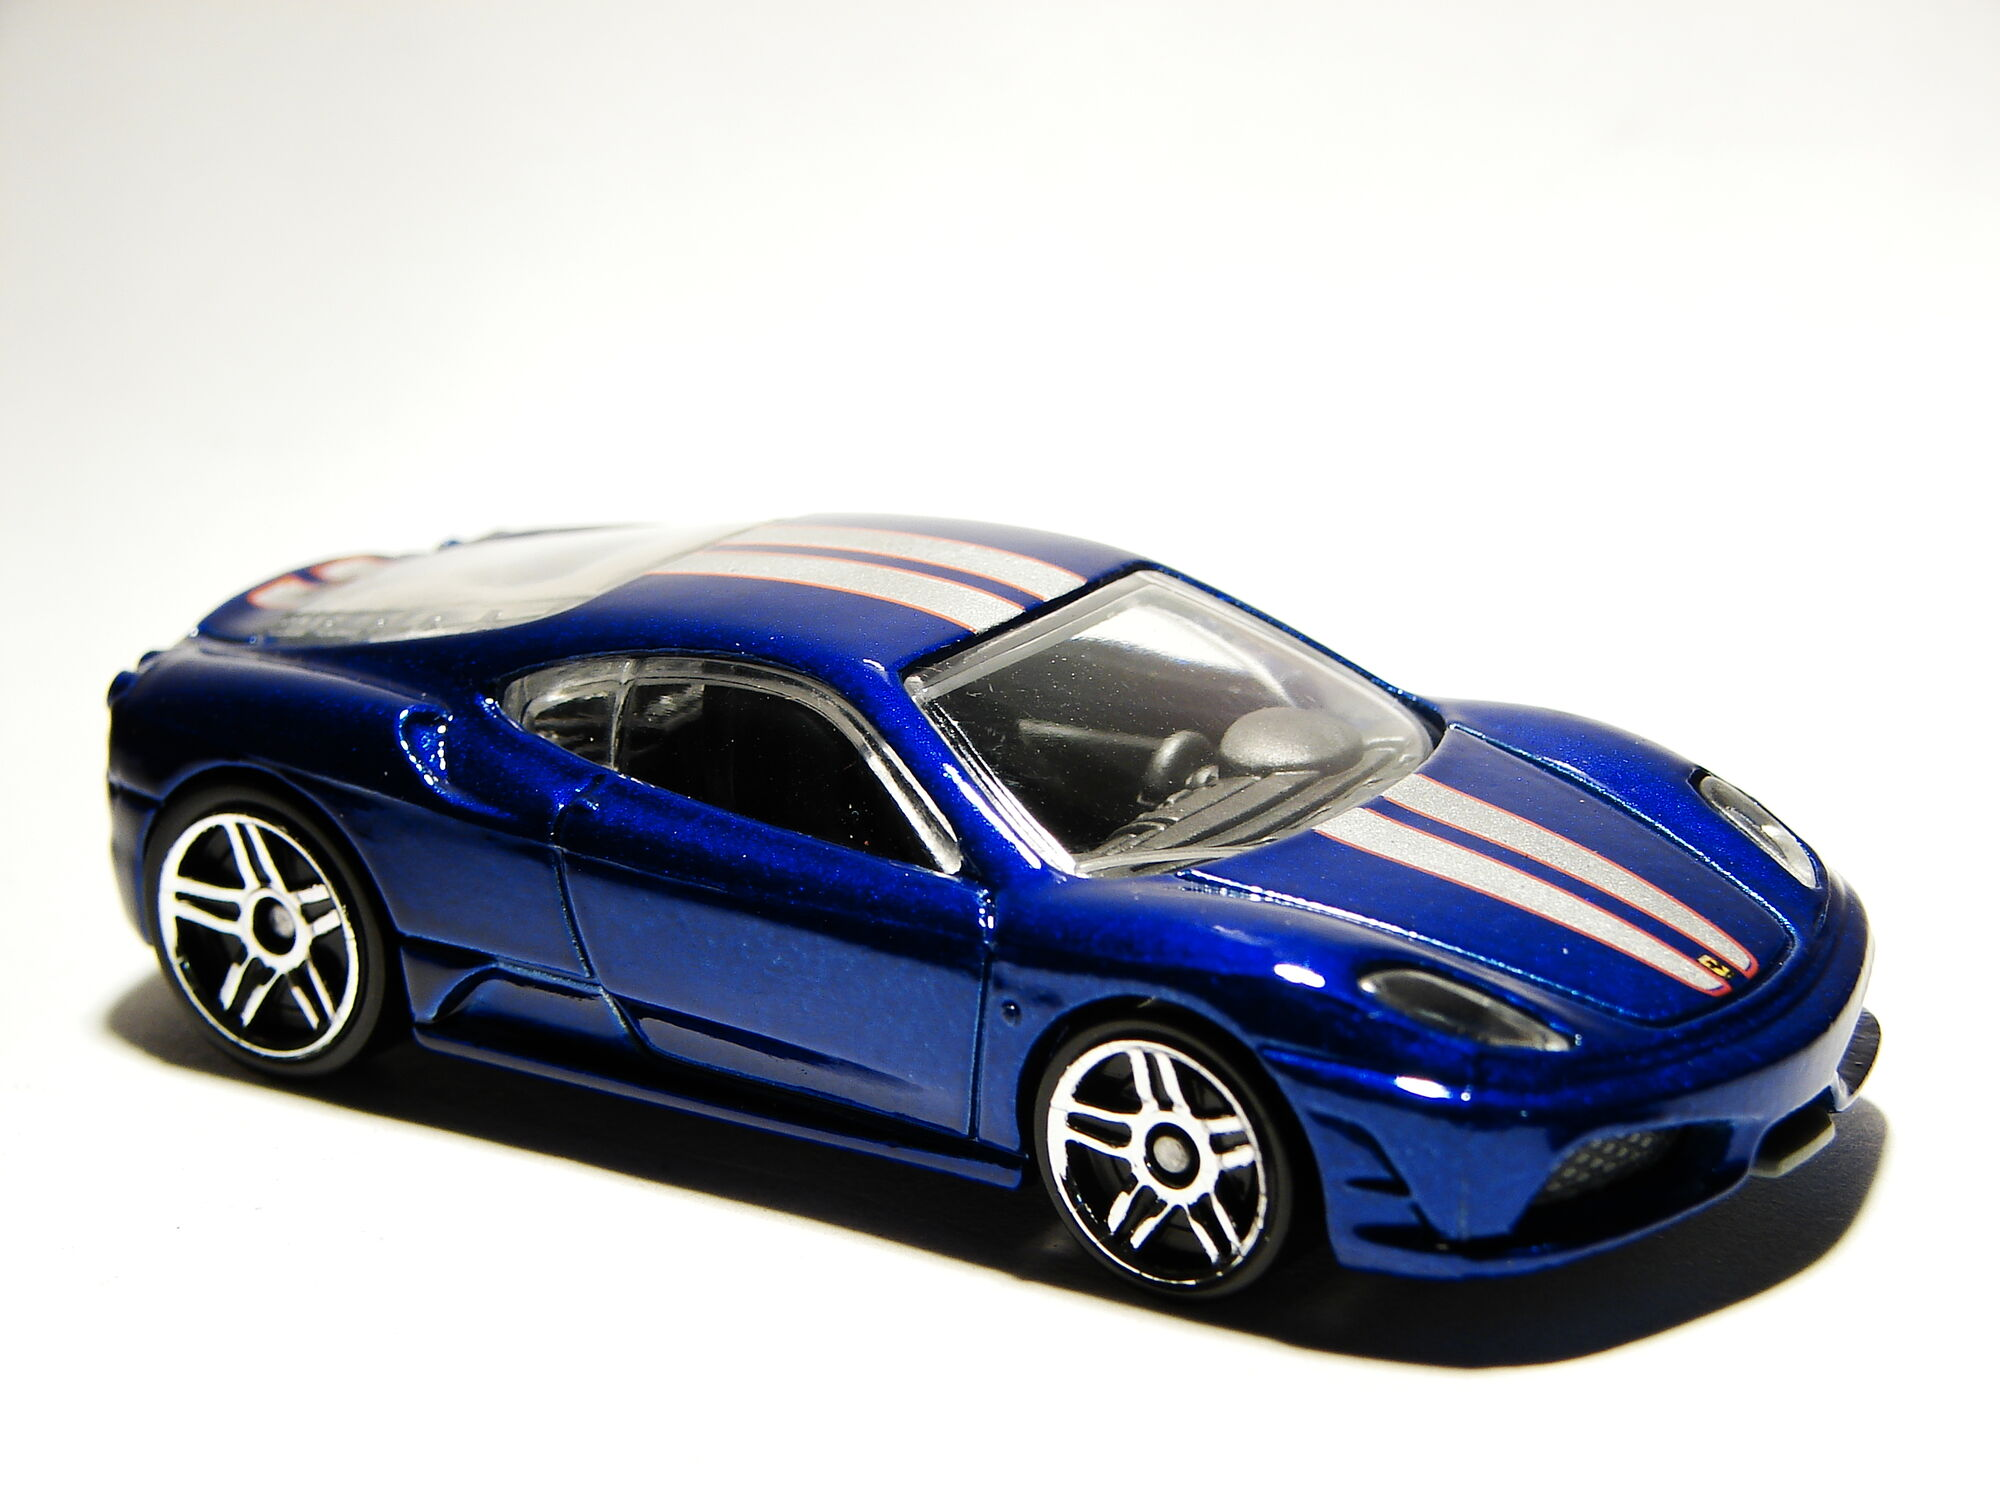 image ferrari f430 scuderia 07 jpg hot wheels wiki. Black Bedroom Furniture Sets. Home Design Ideas